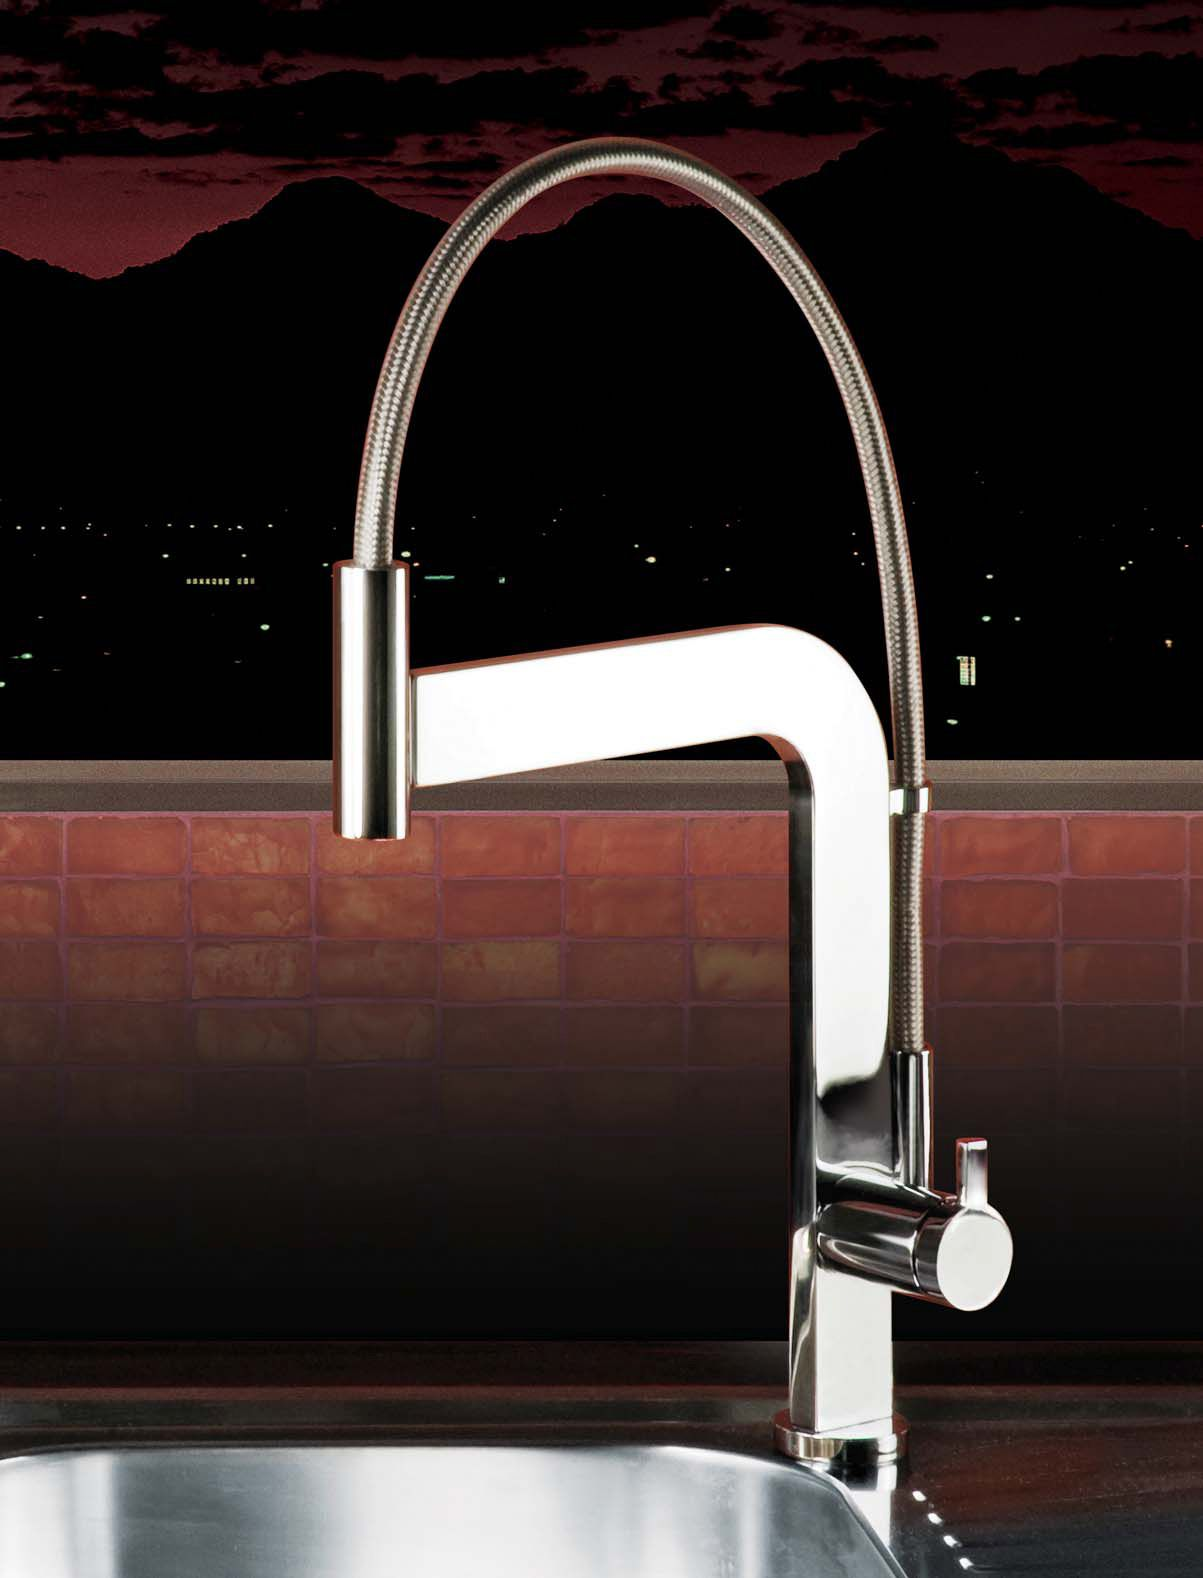 This really cool kitchen faucet from Webert Italian Design which ...